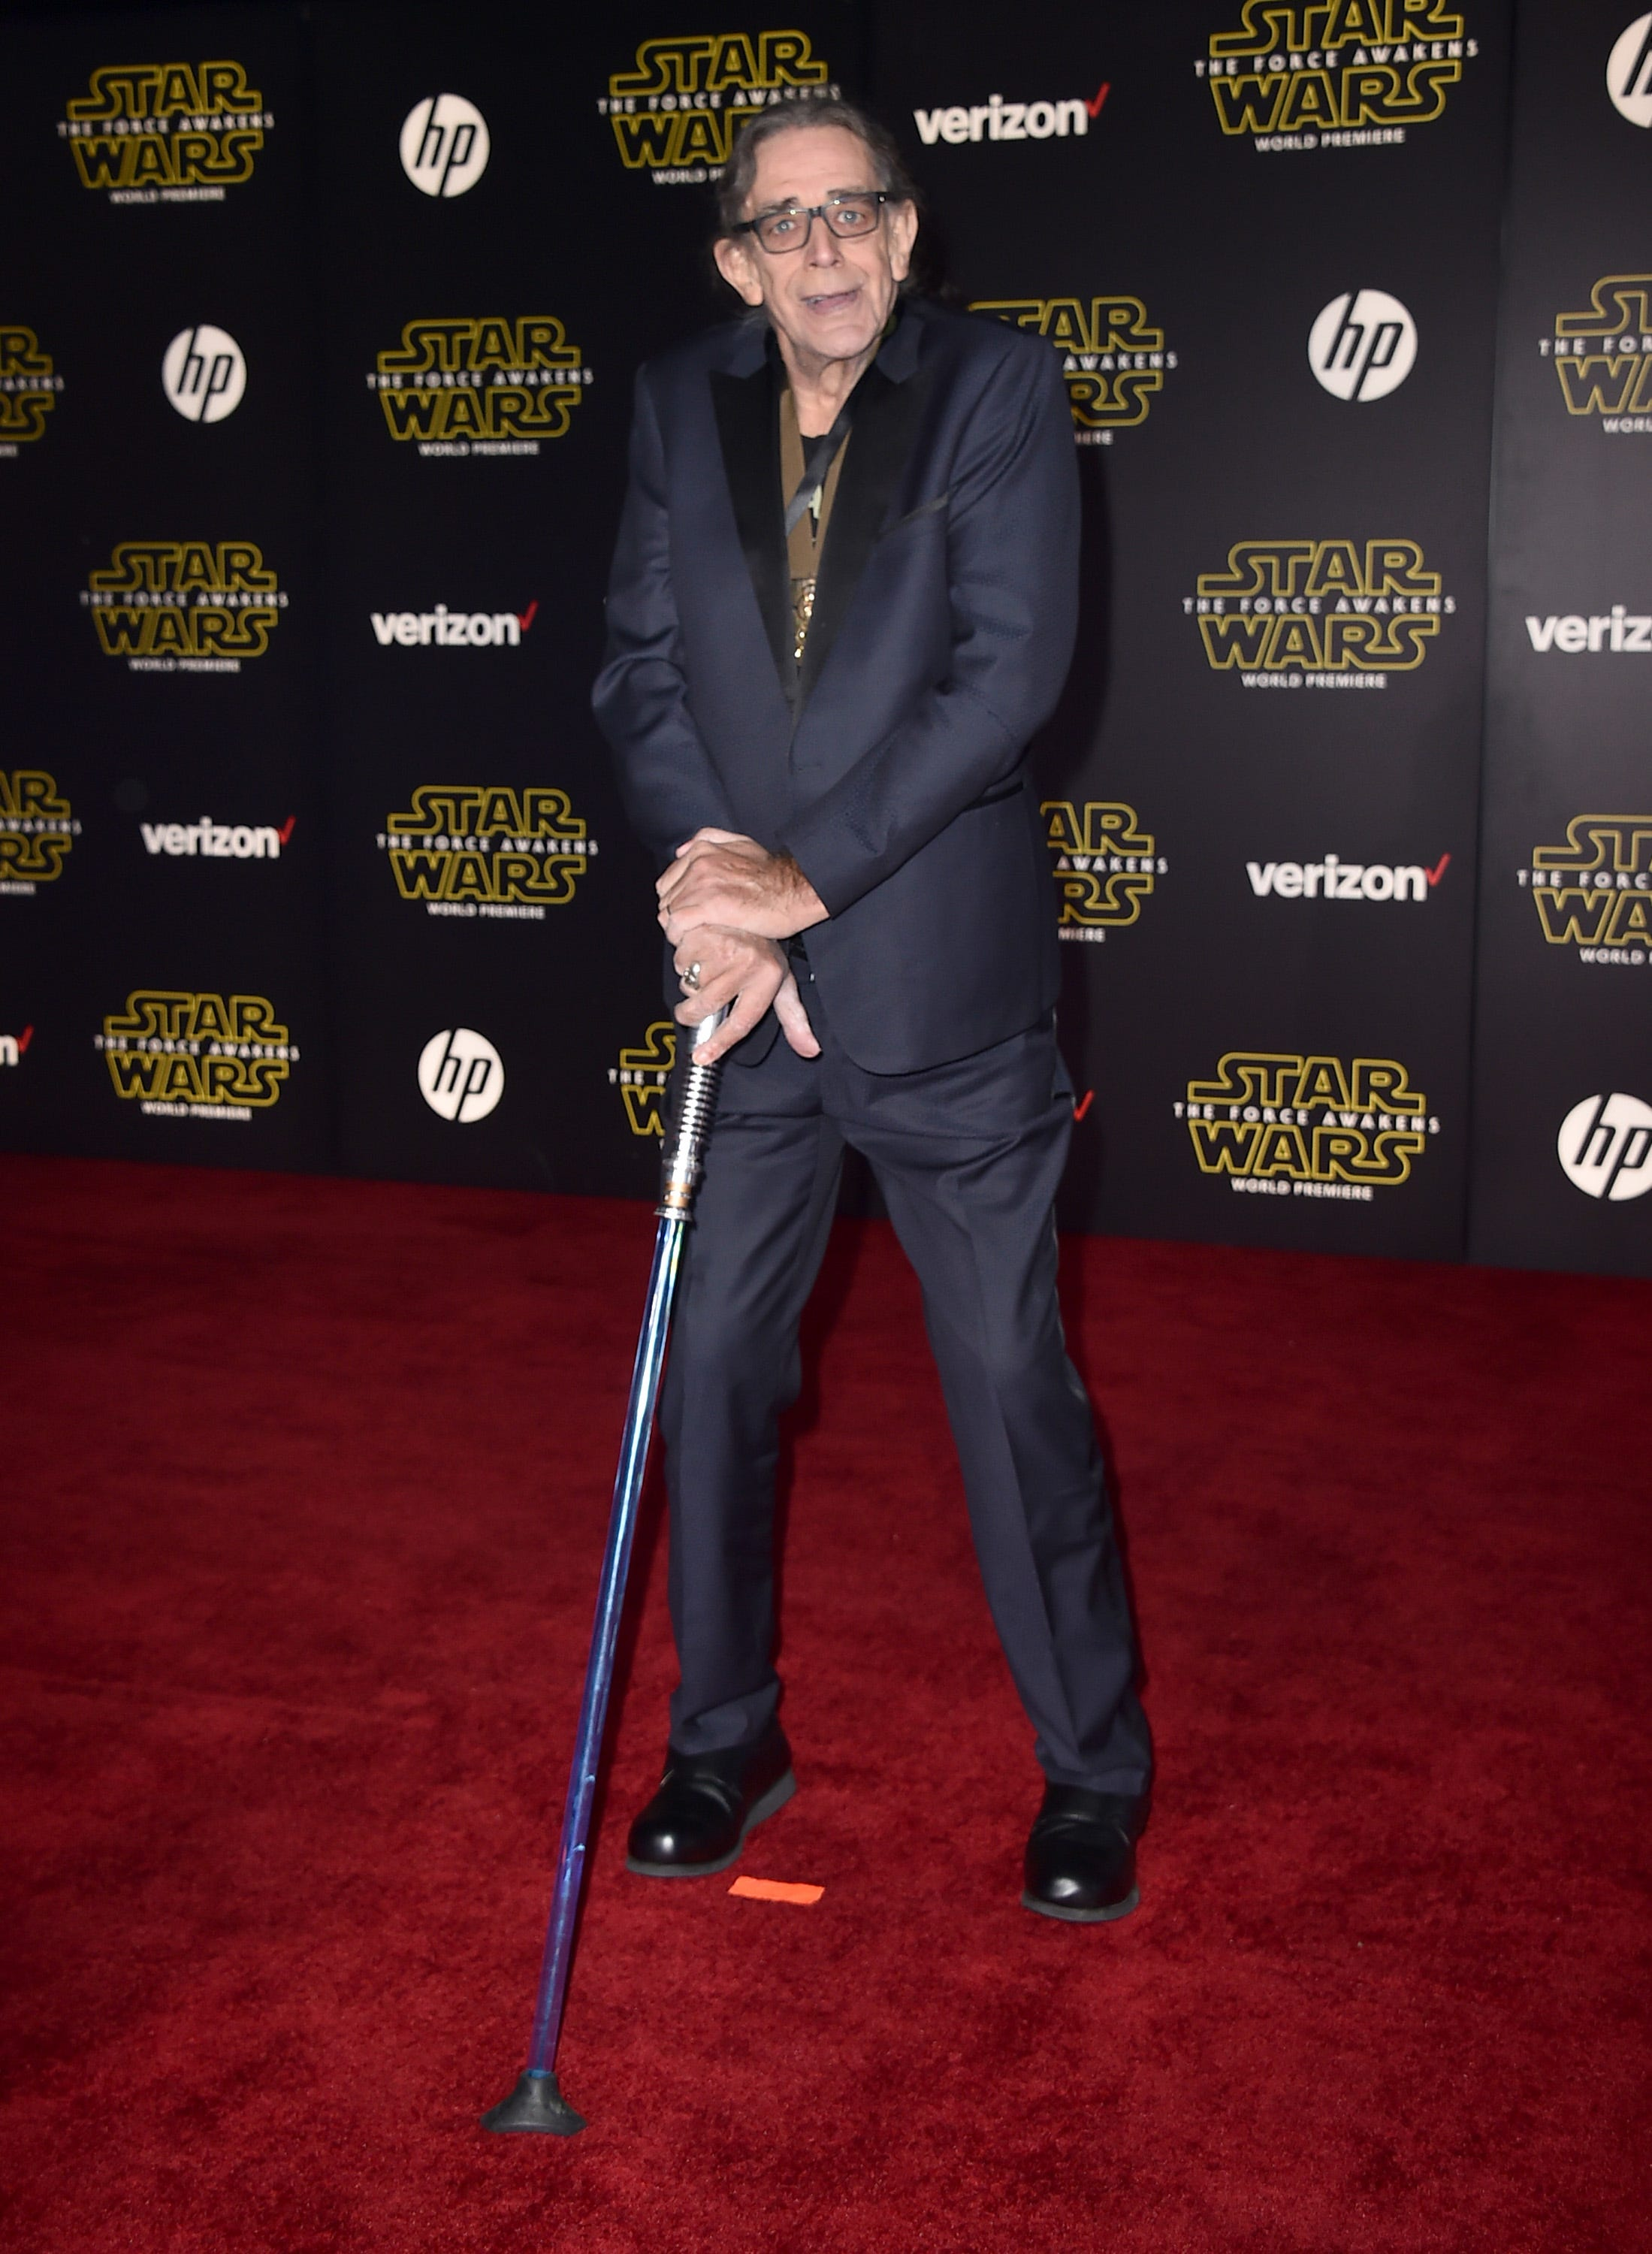 peter mayhew harrison fordpeter mayhew young, peter mayhew harrison ford, peter mayhew instagram, peter mayhew height, peter mayhew site, peter mayhew age, peter mayhew reddit, peter mayhew disability, peter mayhew twitter, peter mayhew interview, peter mayhew, peter mayhew net worth, peter mayhew chewbacca roar, peter mayhew 1977, peter mayhew wiki, peter mayhew star wars, peter mayhew 2015, peter mayhew photos, peter mayhew family, peter mayhew taille